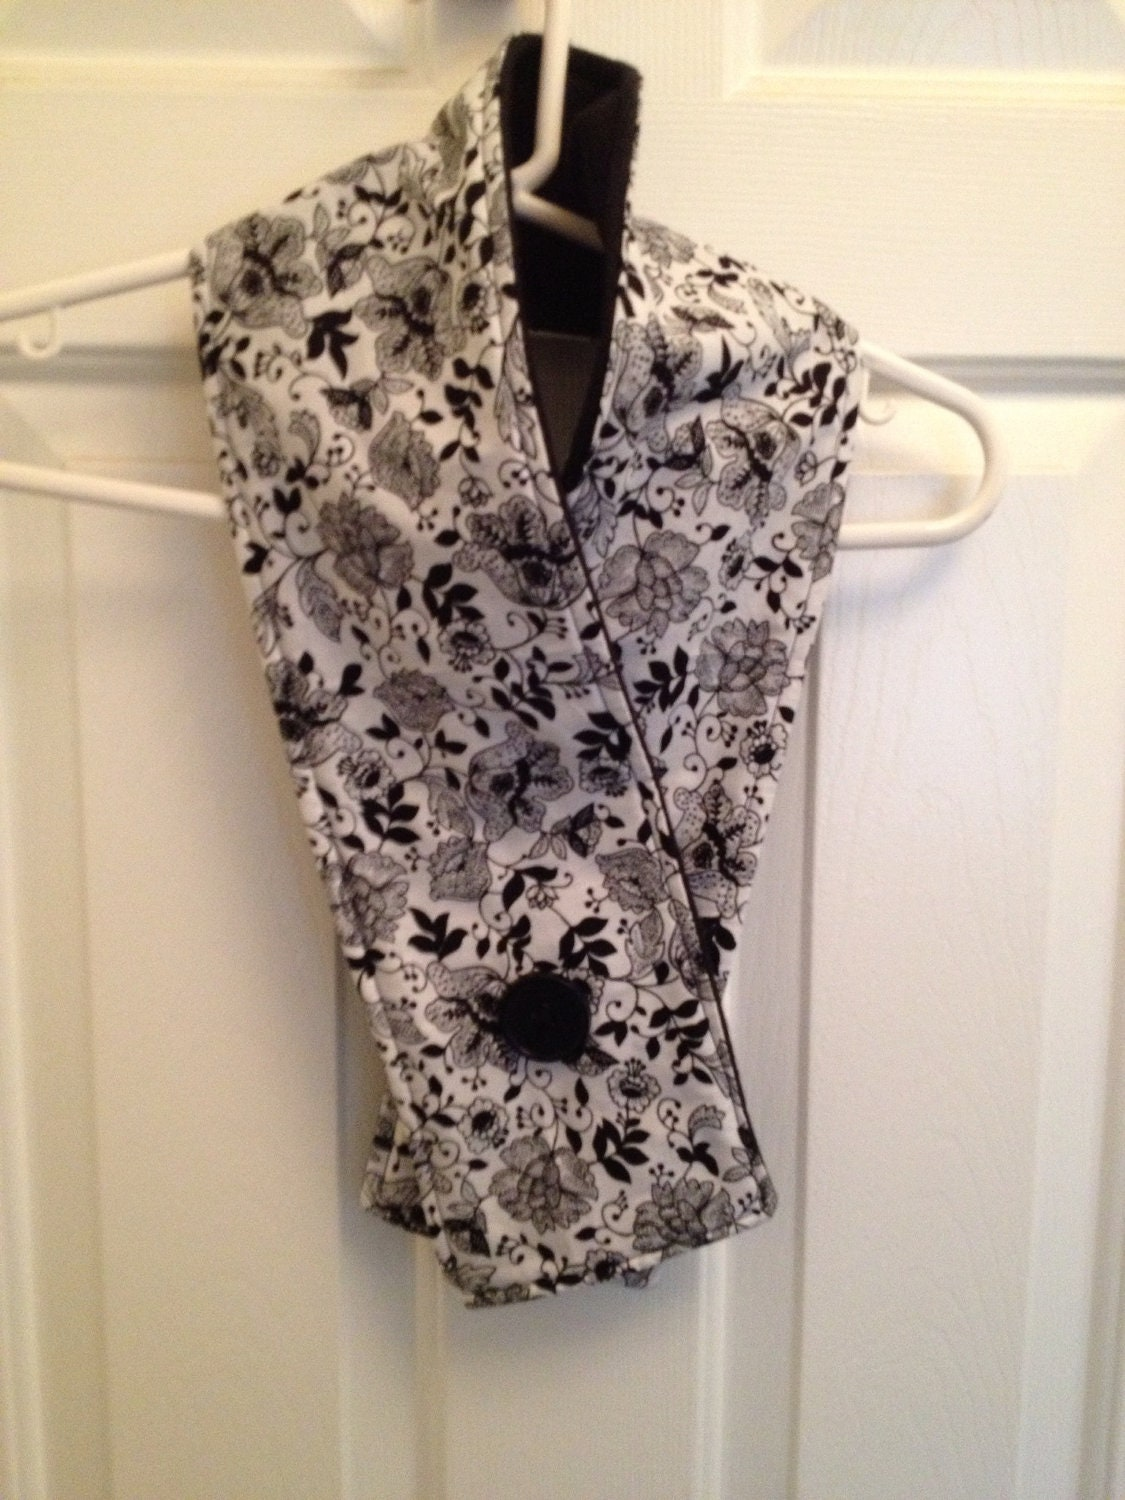 Black and white Floral print with Black fleece Lining Scarf Neck Warmer